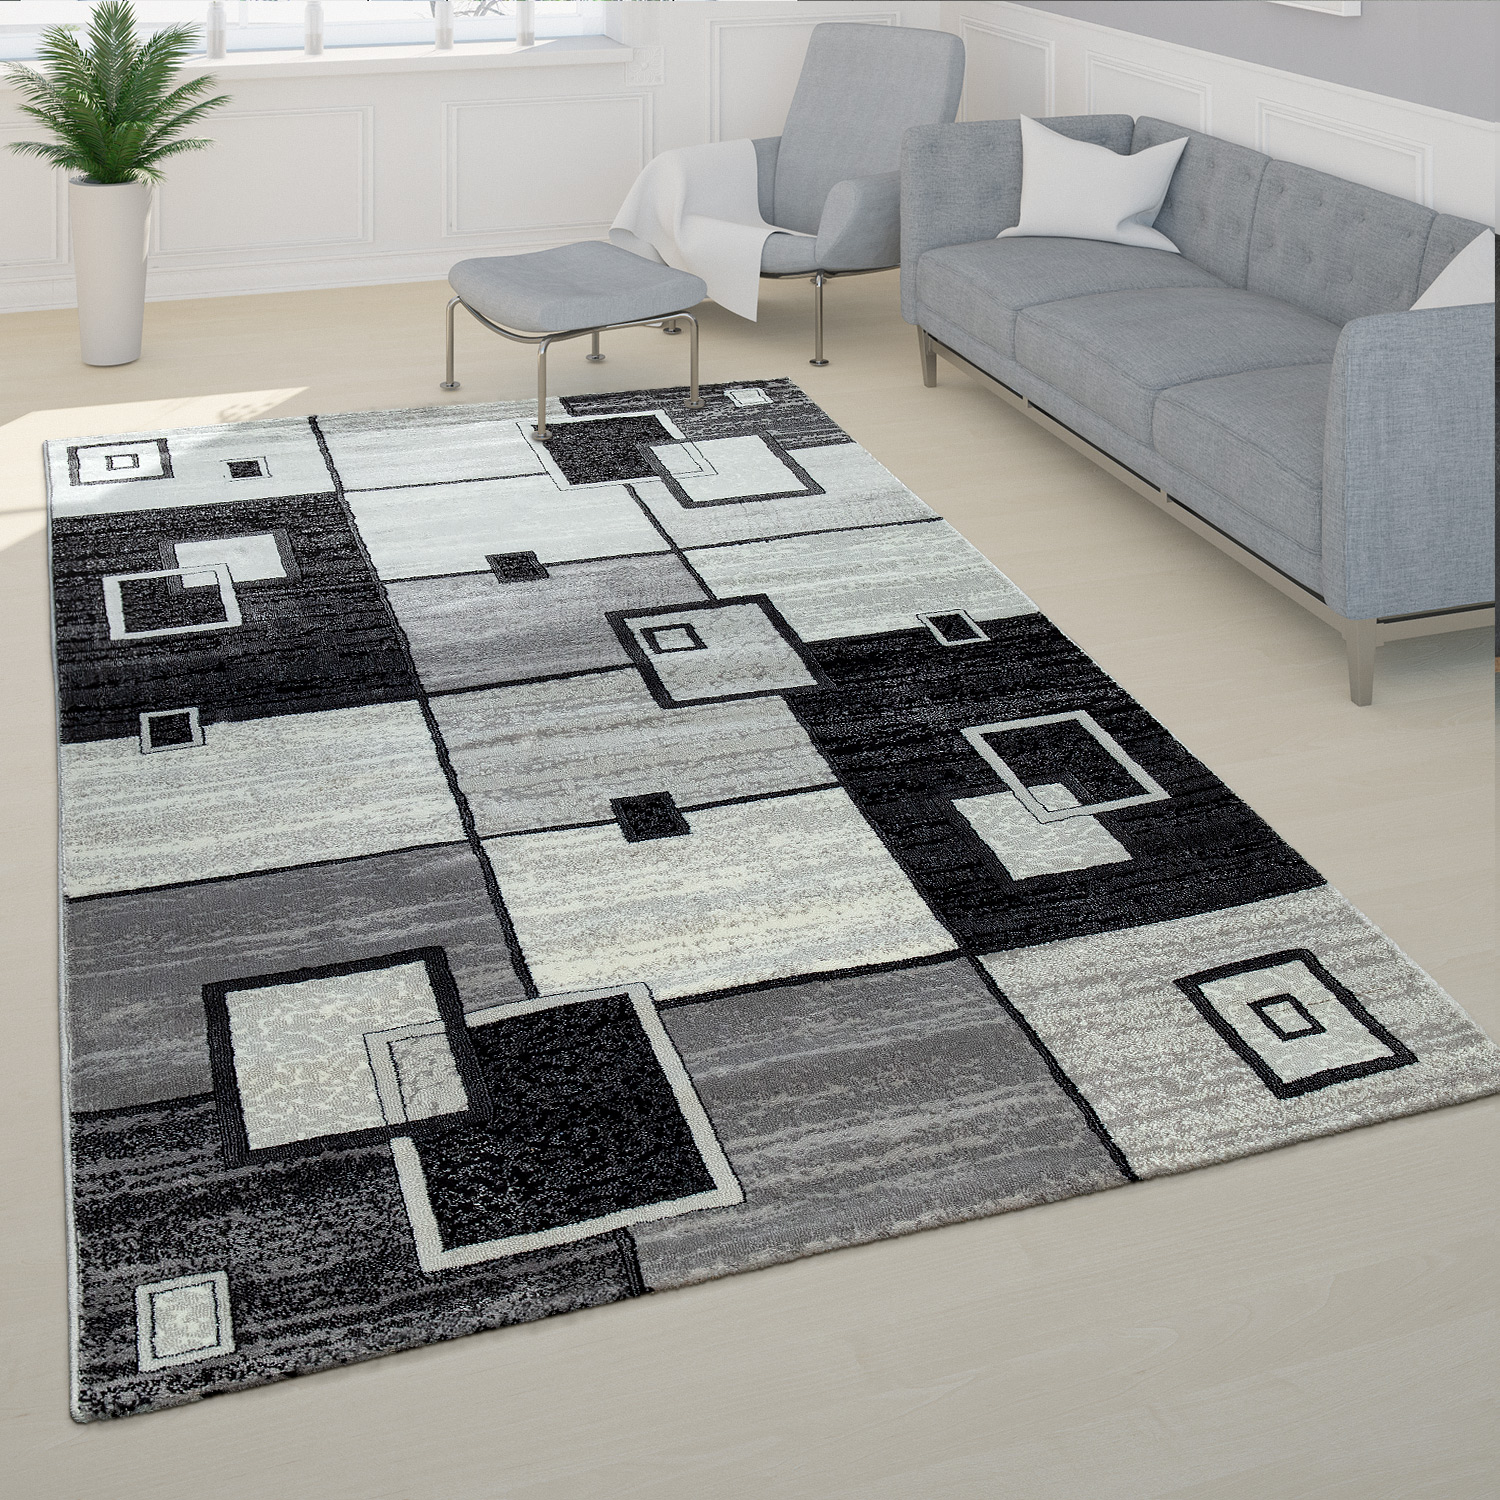 Elegant Designer Rug Checked Short Pile in Grey Cream Black Mottled Sale